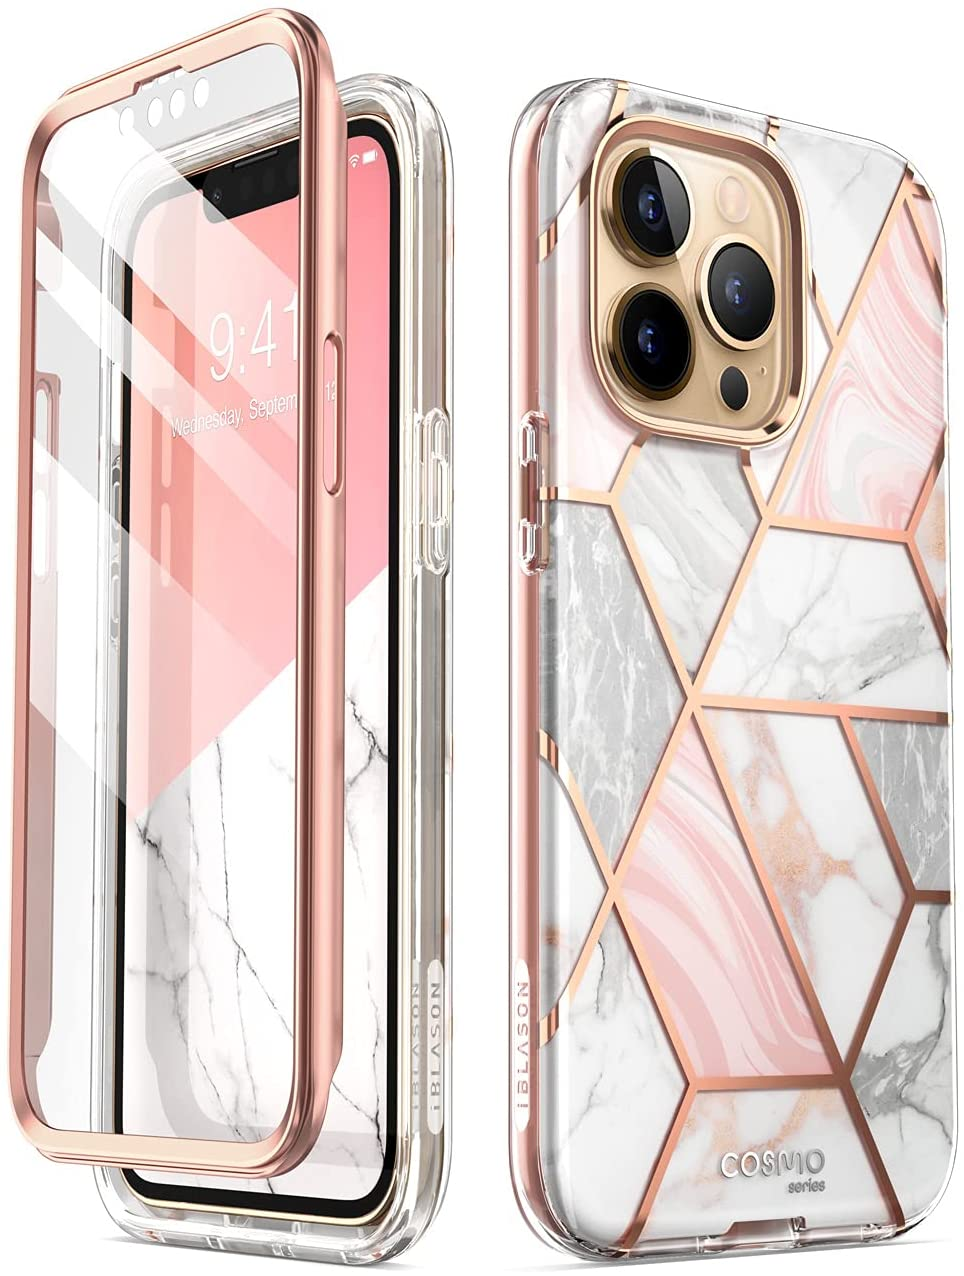 i-Blason Cosmo Series Case for iPhone 13 Pro Max 6.7 inch (2021 Release), Slim Full-Body Stylish Protective Case with Built-in Screen Protector (Marble)